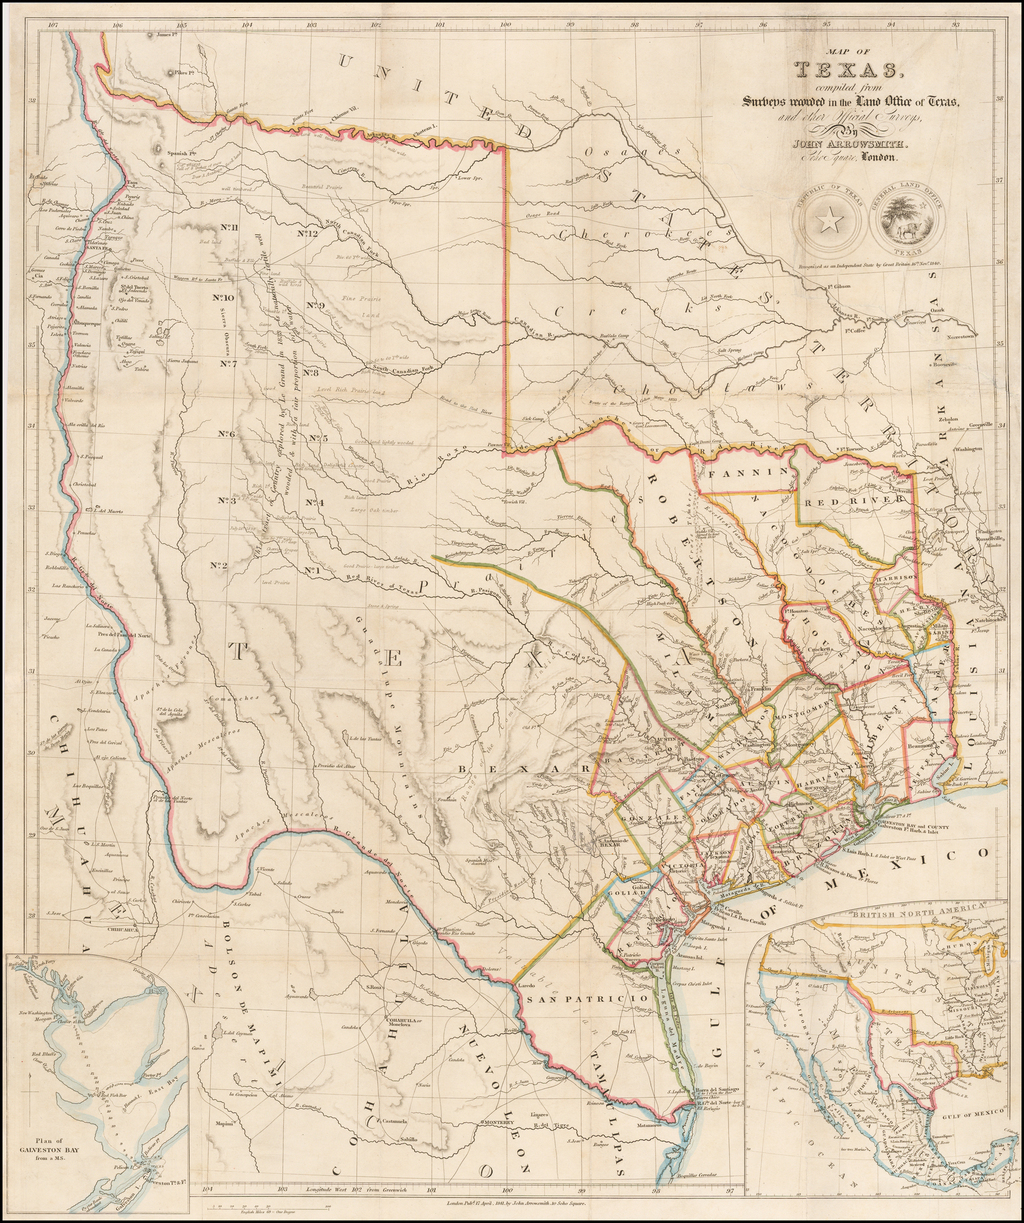 Map Of Texas 1840.A Map Of Texas Compiled From Surveys Recorded In The Land Office Of